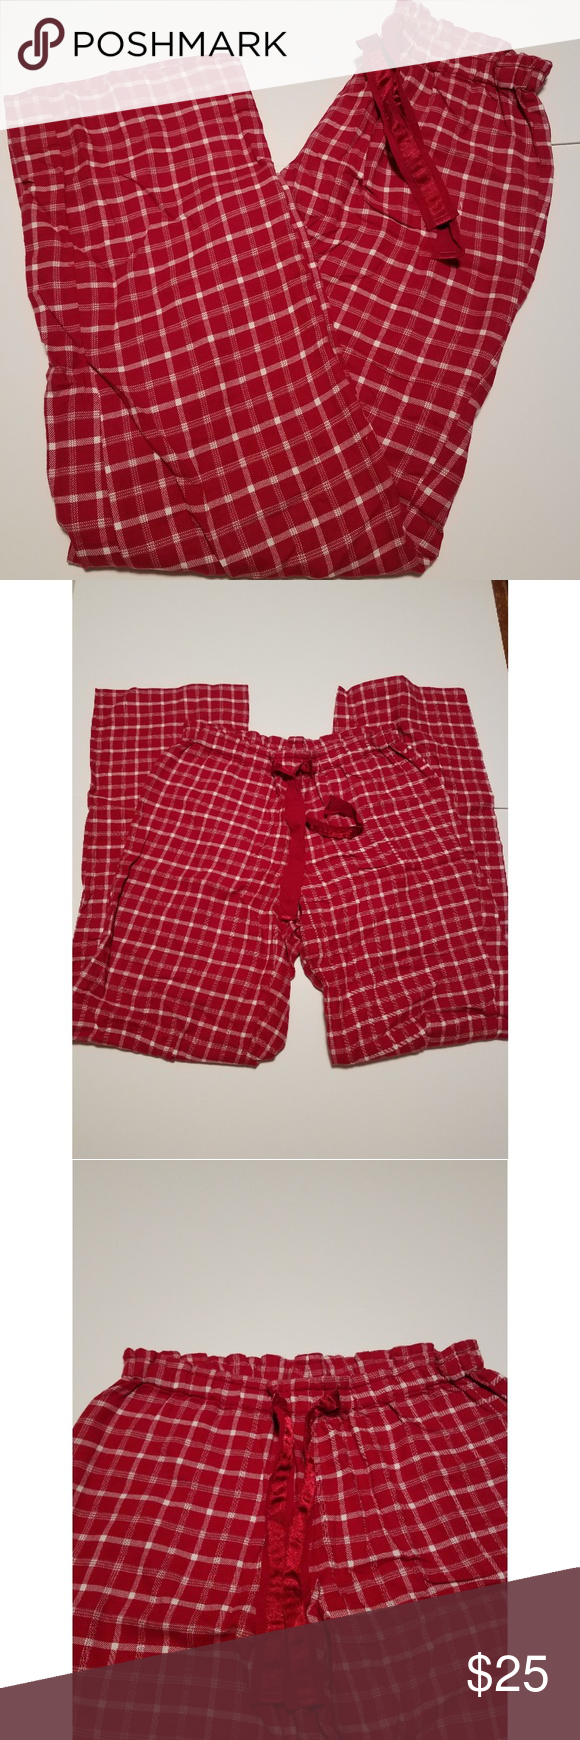 Red flannel pajama pants  Eddie Bauer Womenus Tall PJ Pant